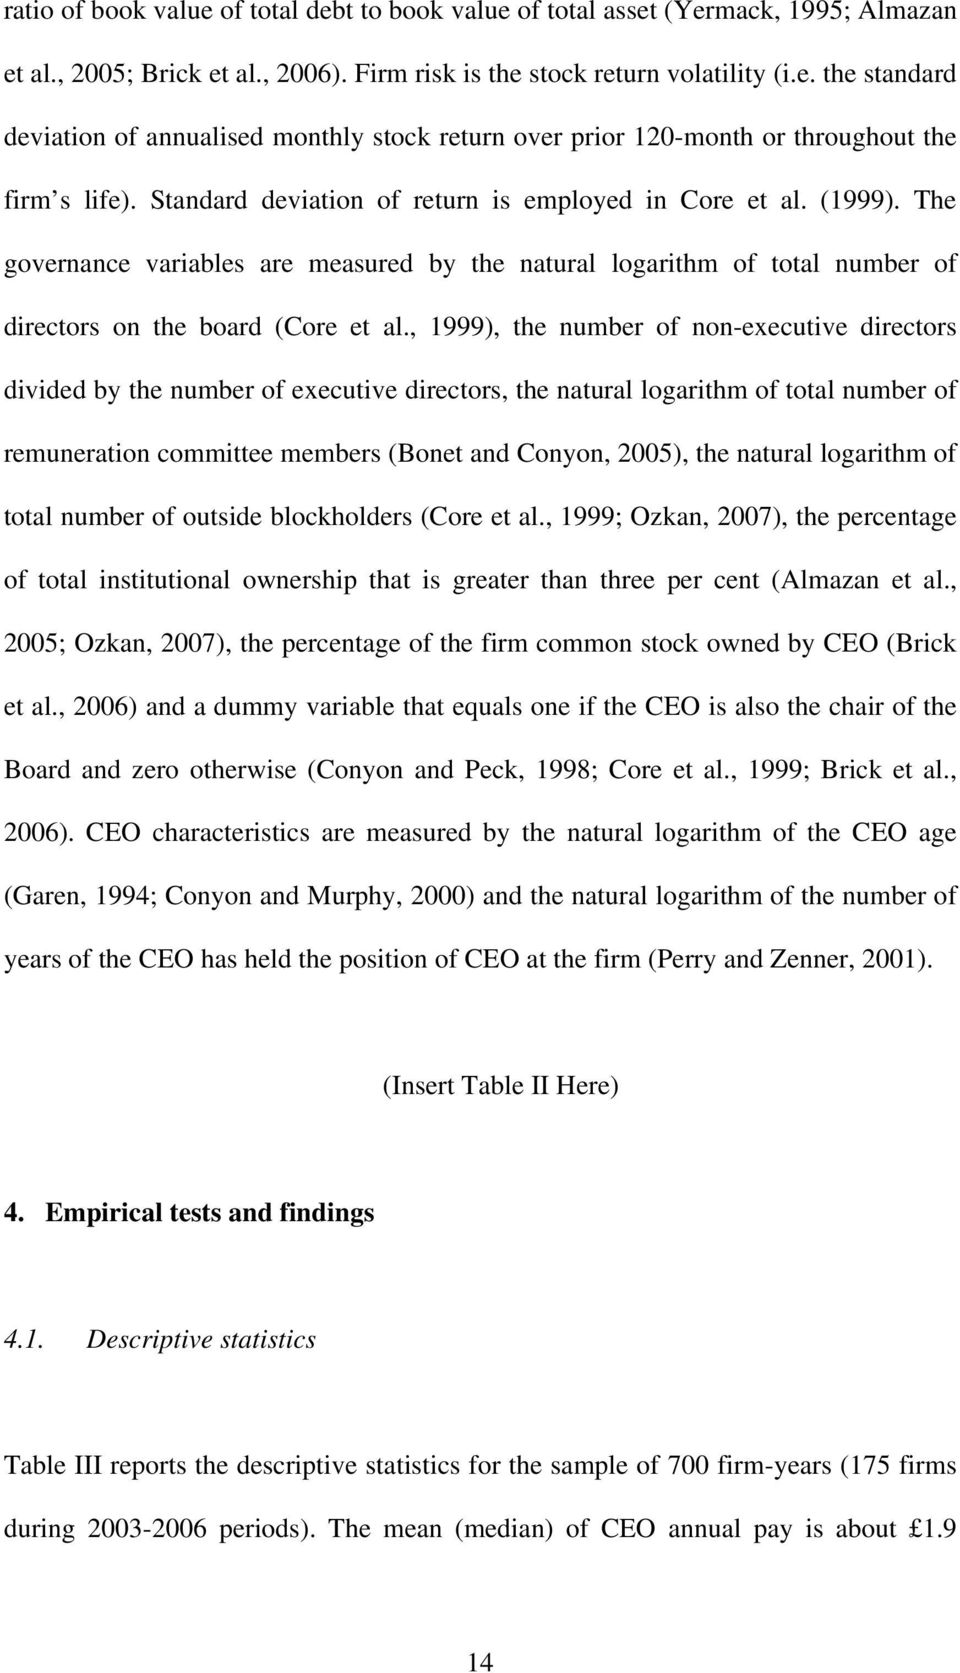 , 1999), the number of non-executive directors divided by the number of executive directors, the natural logarithm of total number of remuneration committee members (Bonet and Conyon, 2005), the